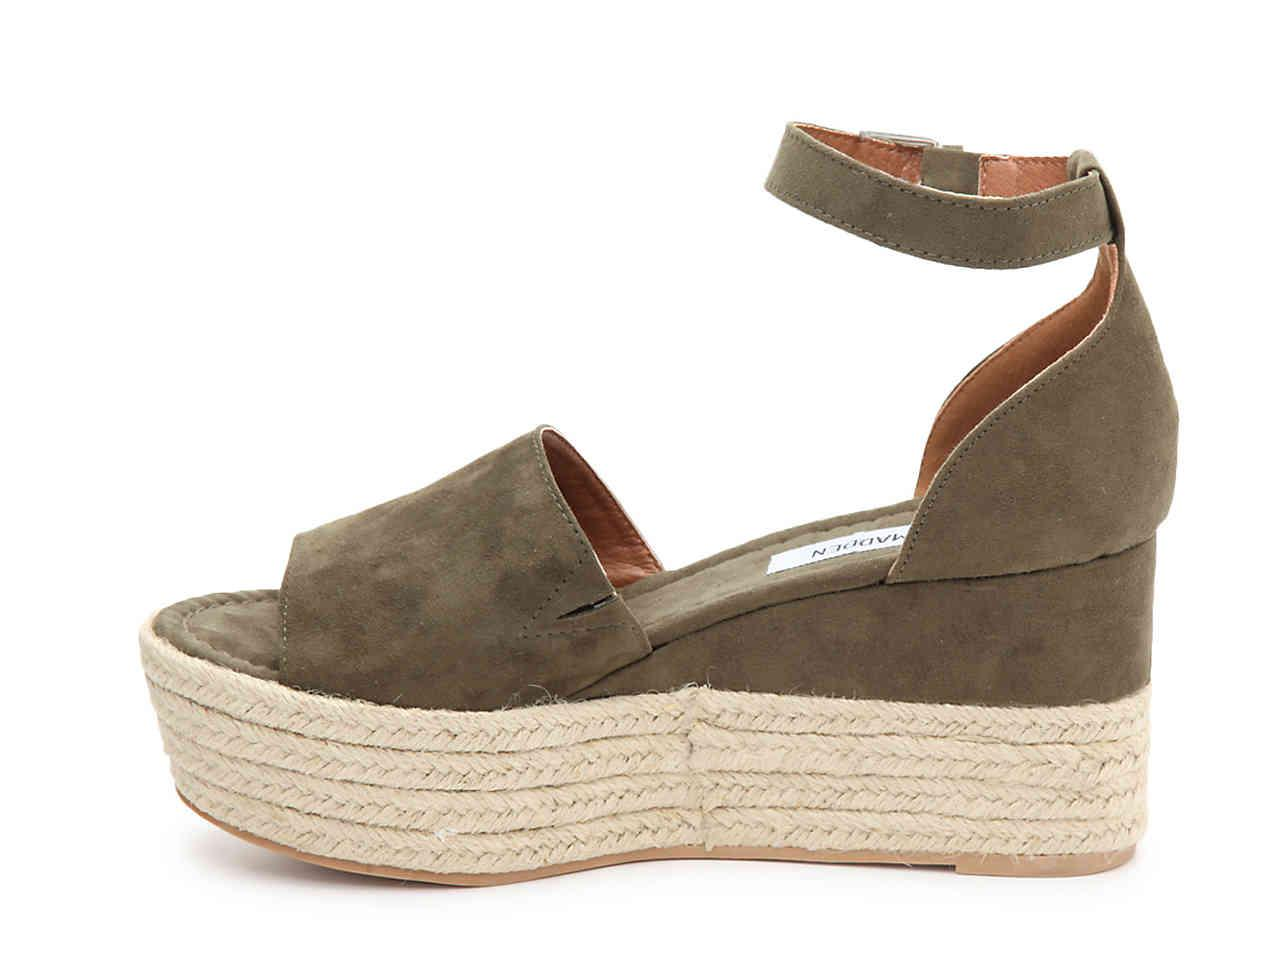 91948178a25 Lyst - Steve Madden Apolo Espadrille Wedge Sandal in Green